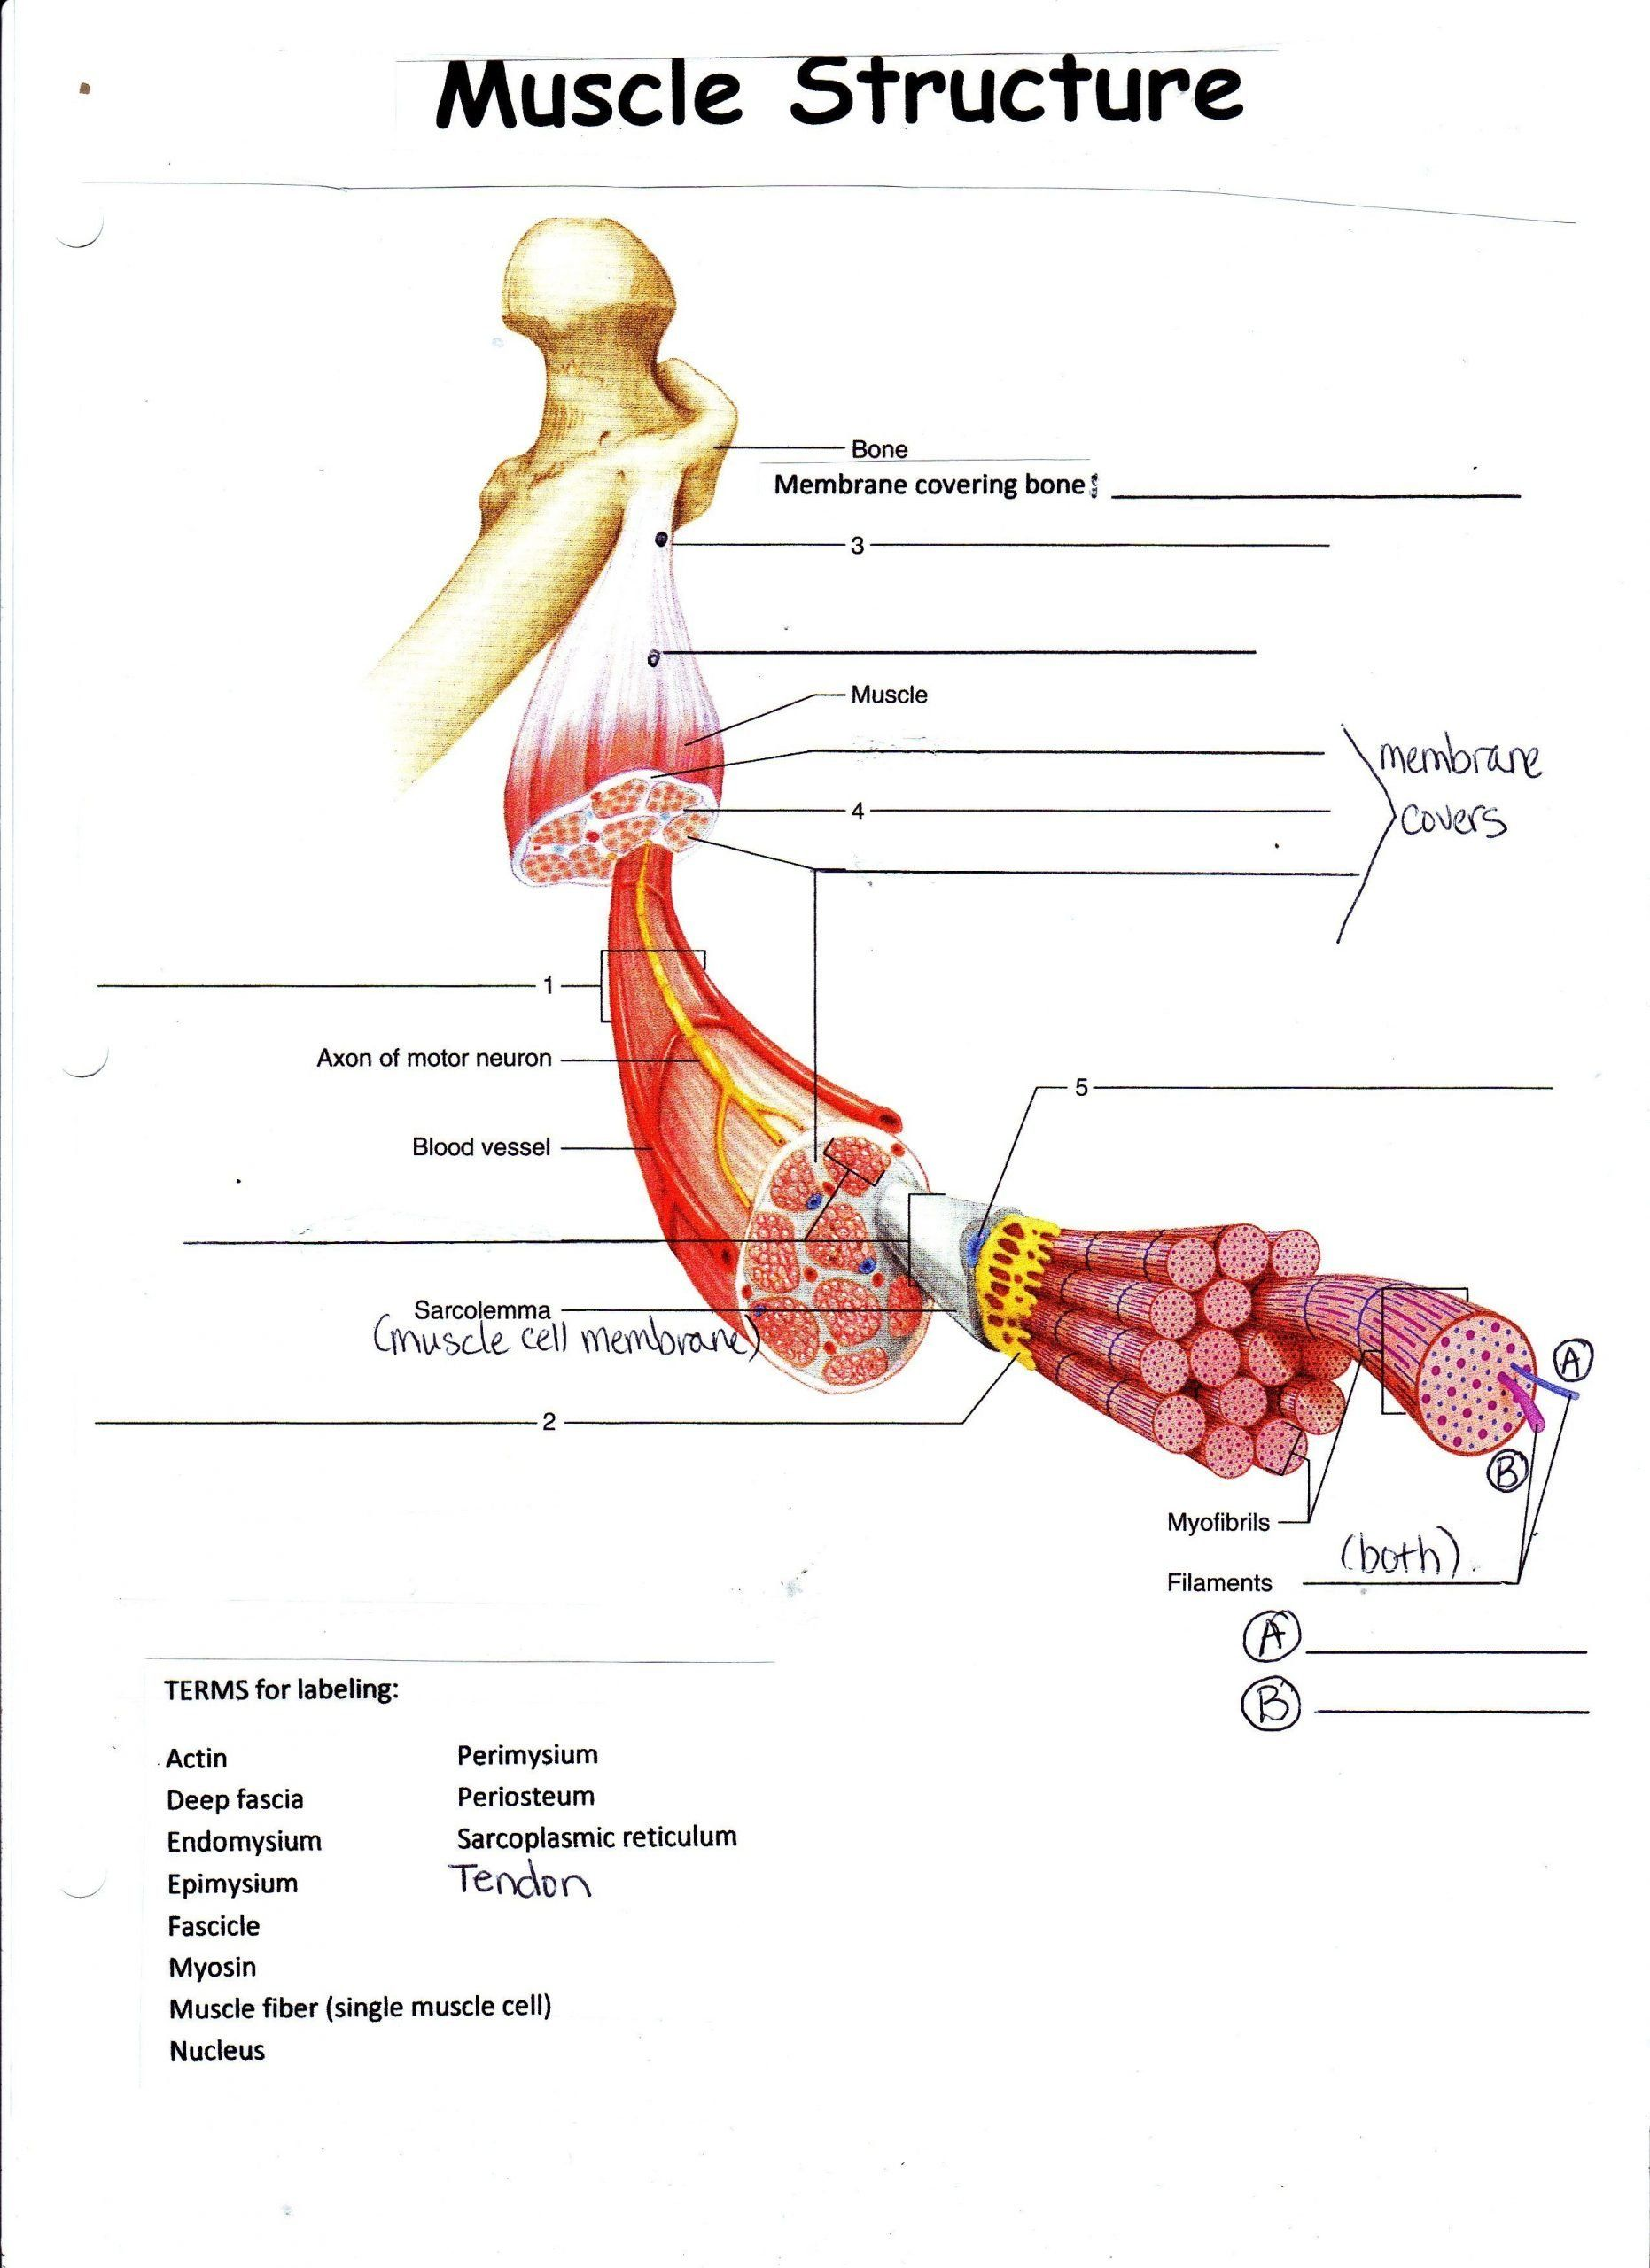 Image Result For Bones And Muscle Worksheet For Grade 2 In 2021 Muscle Diagram Human Muscle Anatomy Skeletal And Muscular System